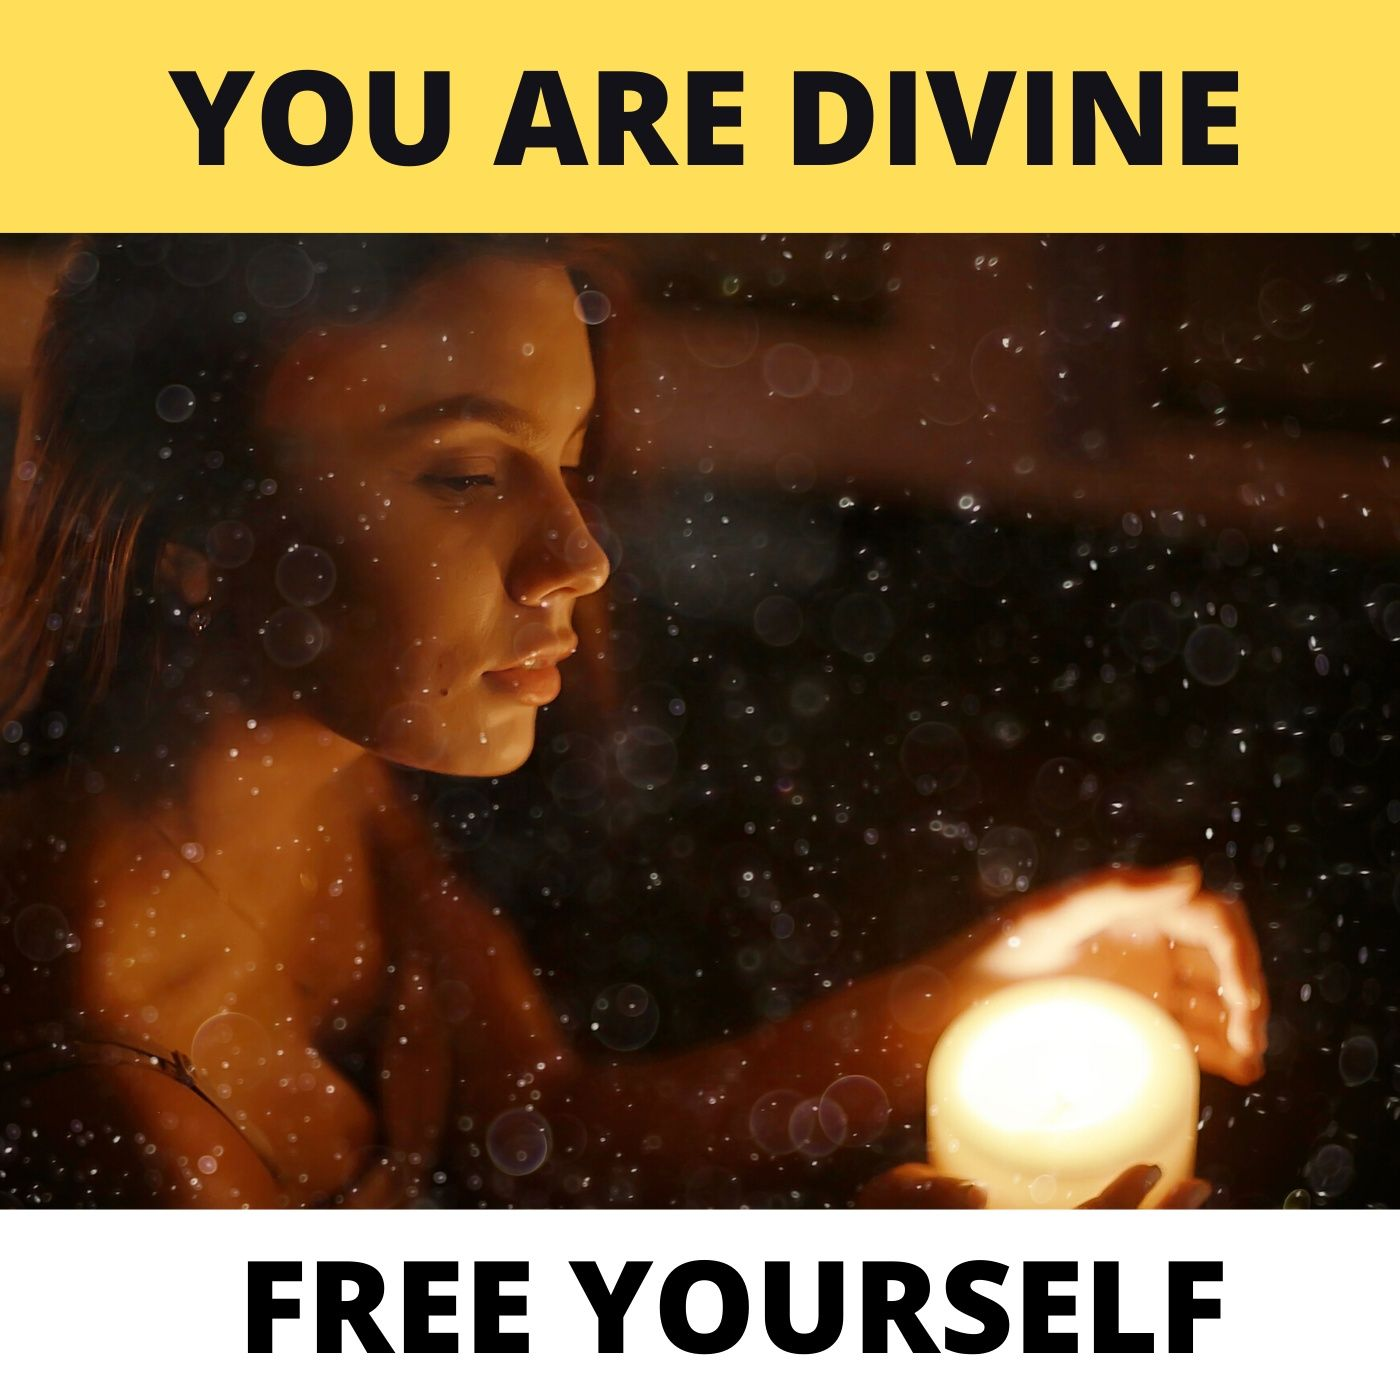 You Are Divine: Free Yourself